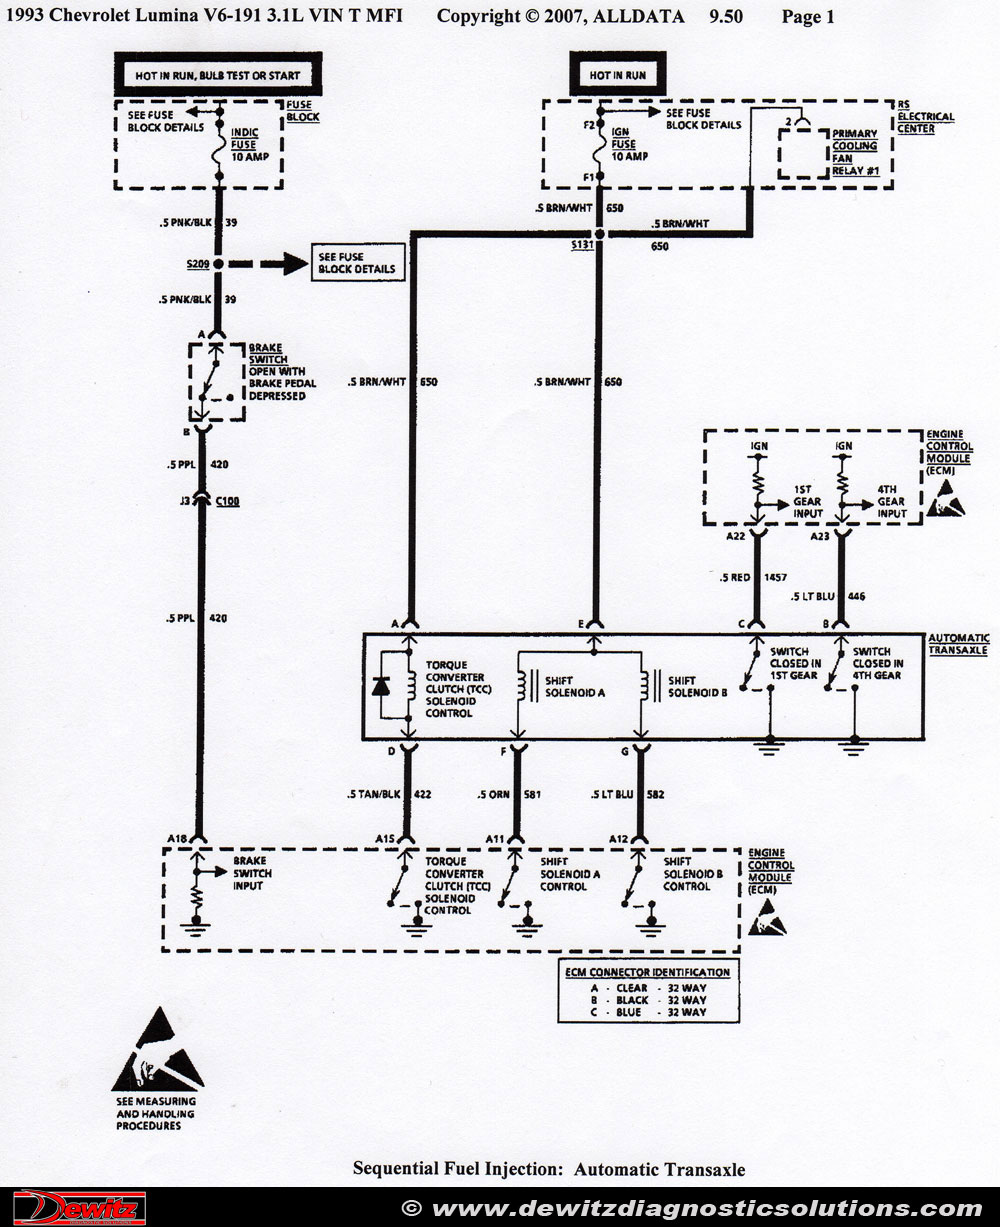 Oil Pump Wiring Diagram Library 1992 Gmc 3500 Pressure Lumina Data 1991 Ranger Shift Issue 1993